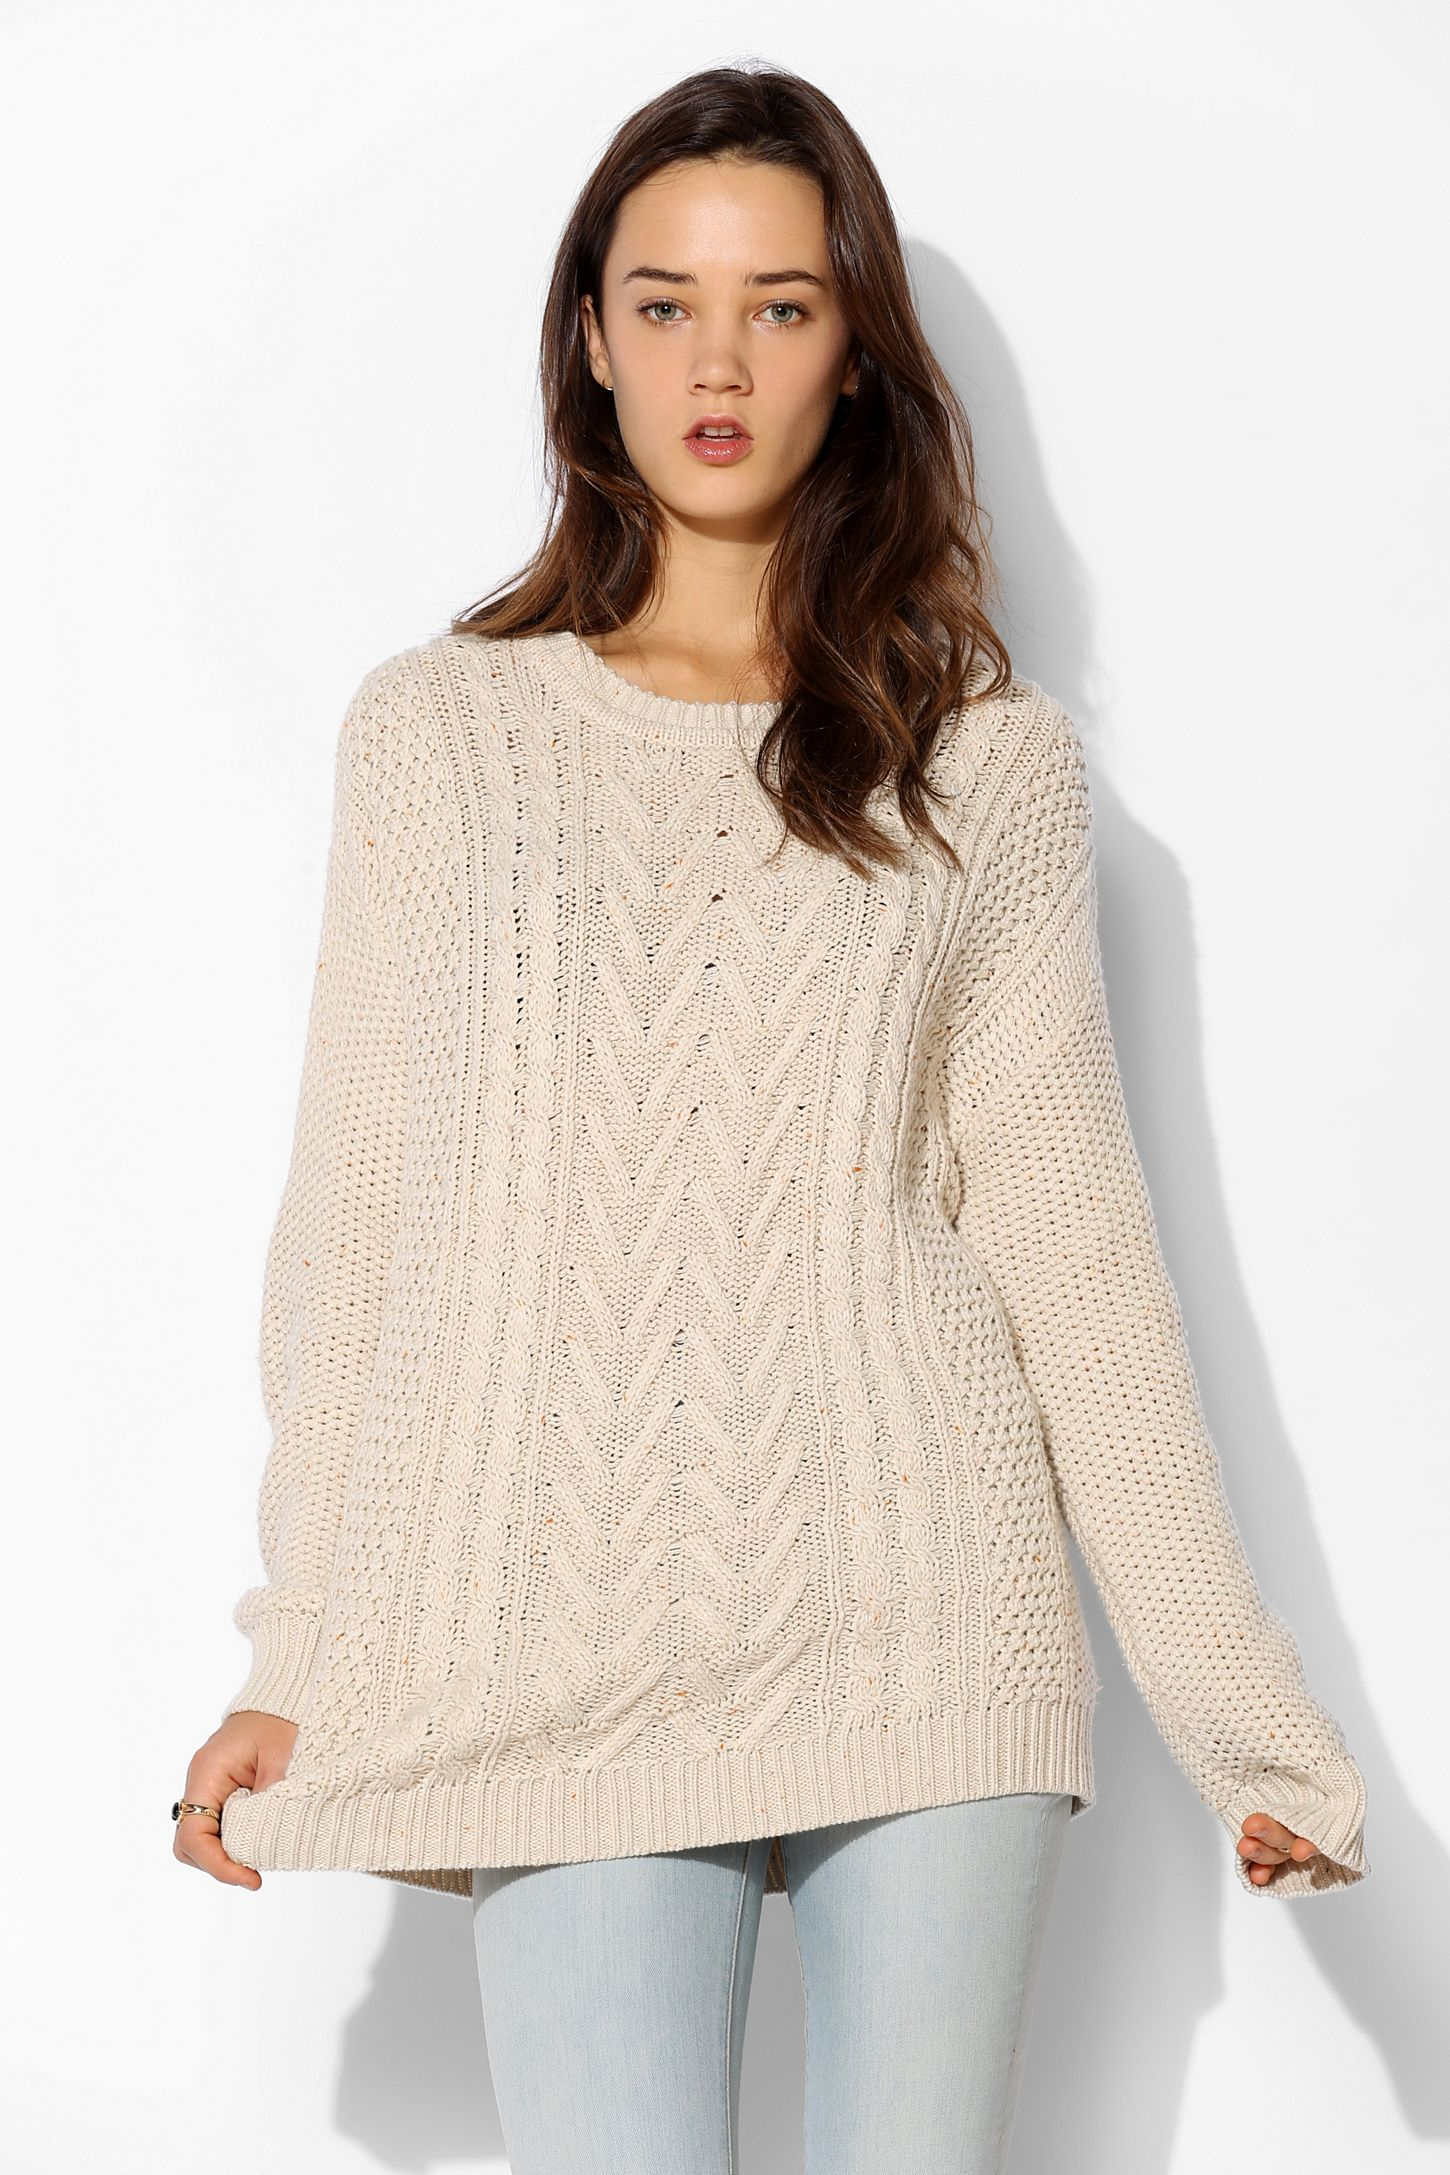 BDG Fall For Cable-Knit Sweater  688b82a19